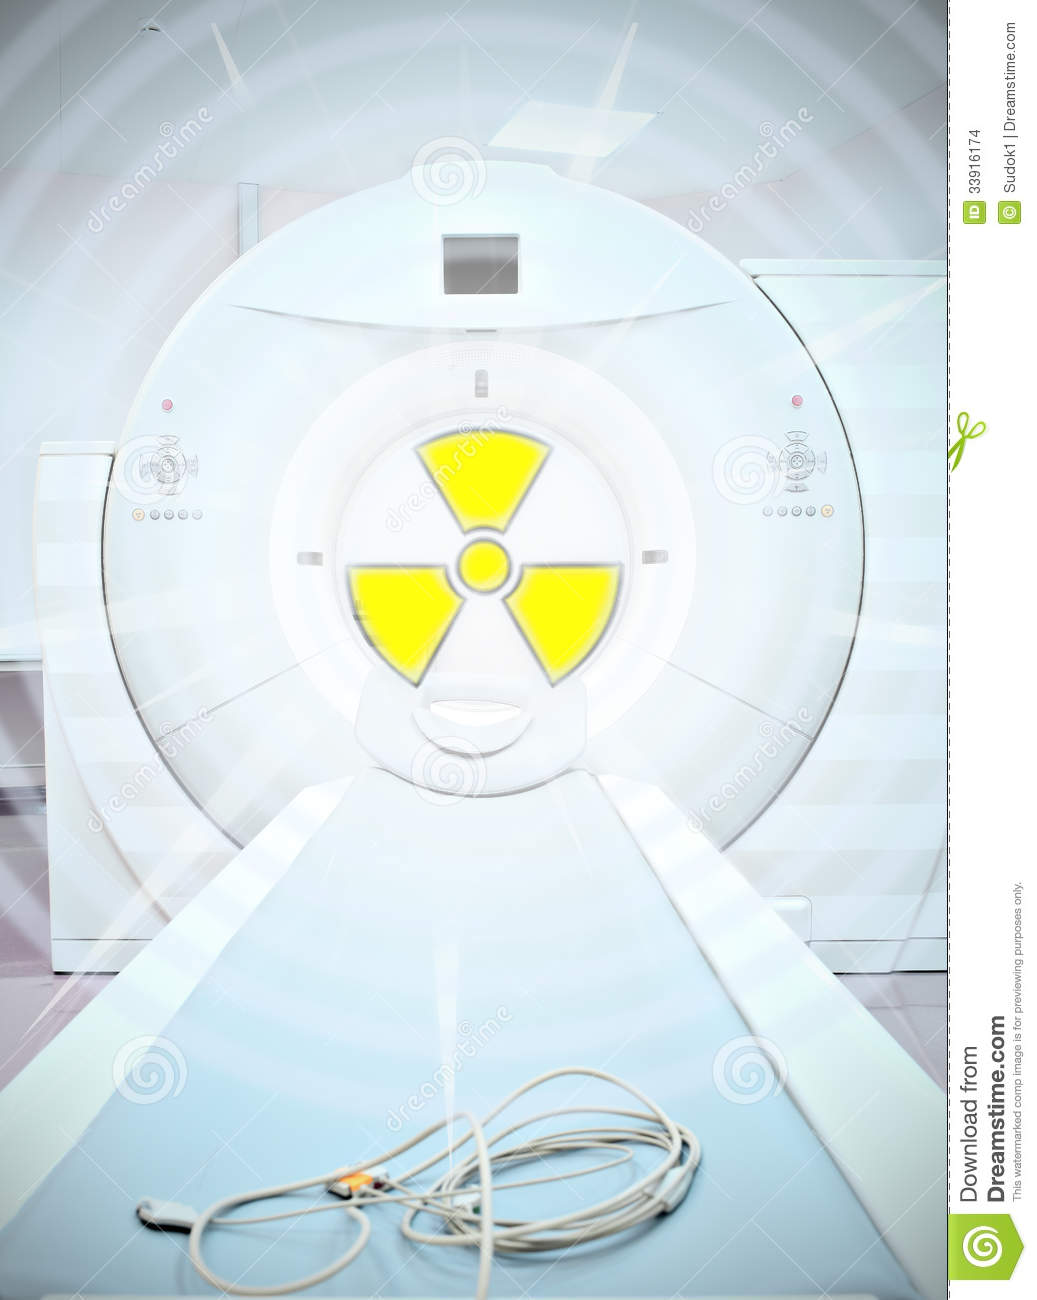 Radiological Protection in Medicine